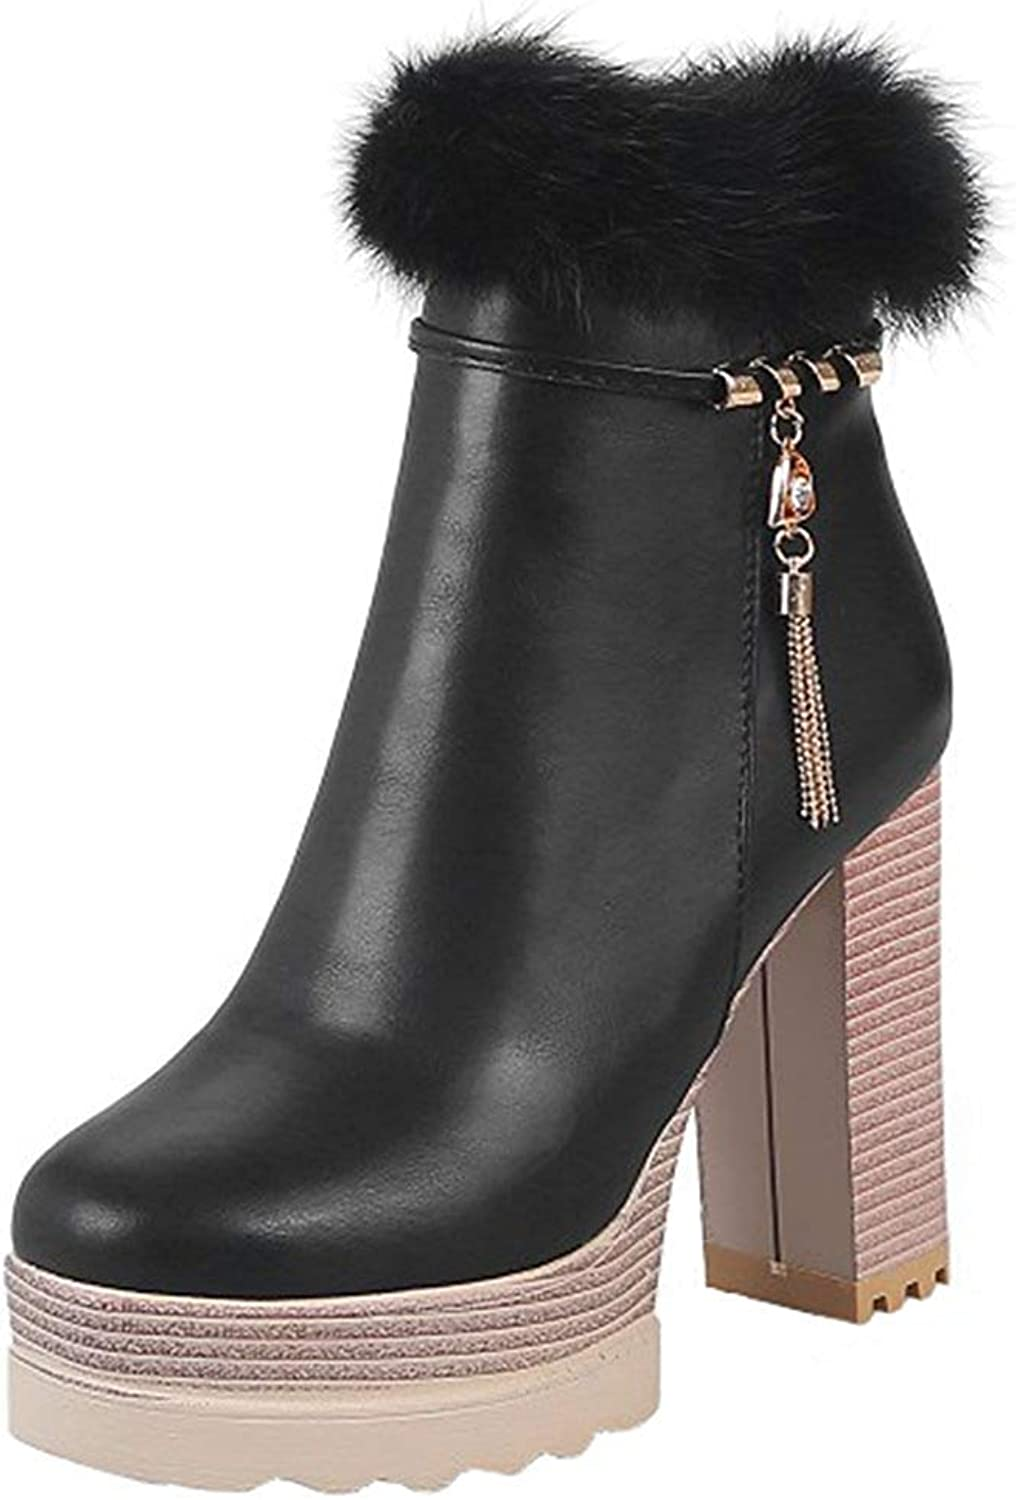 Gcanwea Women's Stylish Fluffy Fur Splicing Pendant Side Zipper Short Boots Stacked Block High Heel Platform Ankle Booties Skinny Fashion Casual Comfortable Pink 6 M US Short Boots